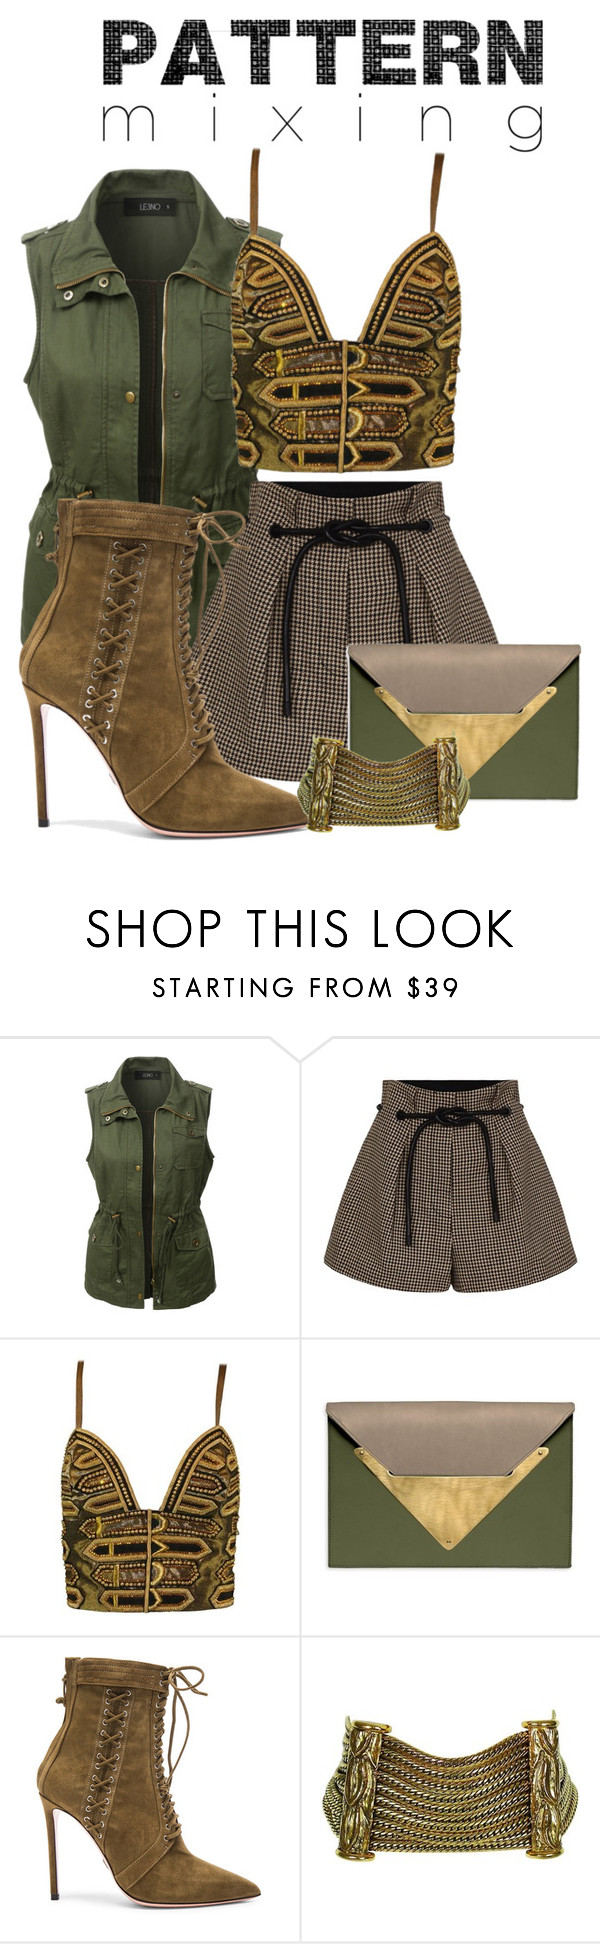 """""""Dare to be Different"""" by nakeda ❤ liked on Polyvore featuring LE3NO, 3.1 Phillip Lim, Versace, Dareen Hakim, Oscar Tiye and Christian Dior"""